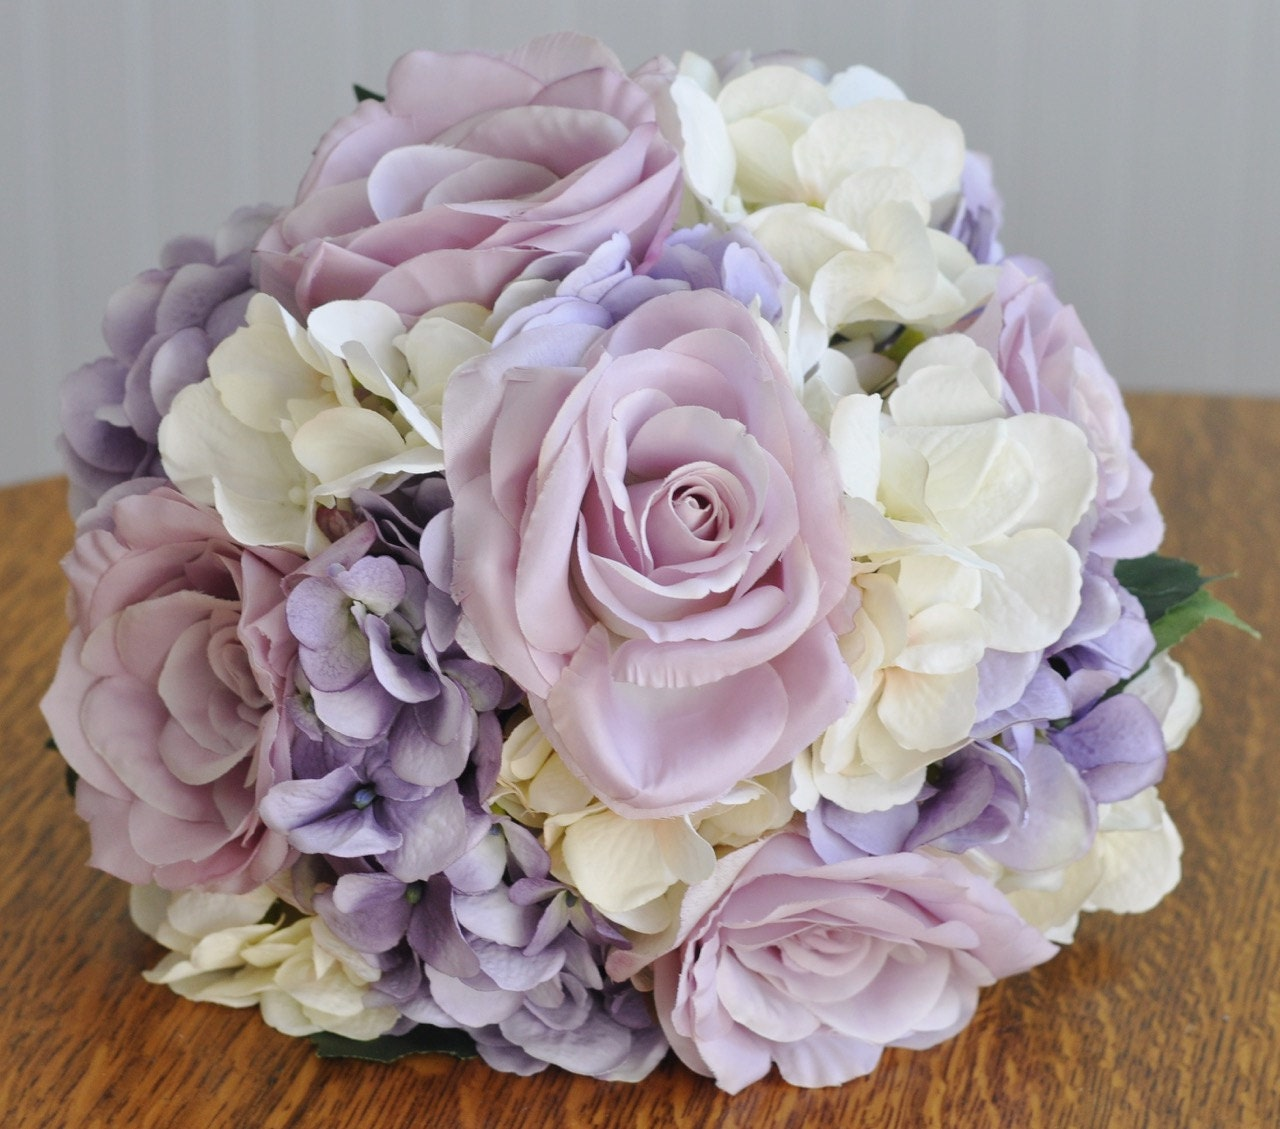 Lavender Rose Gypsophila Bridal Bouquet: Silk Wedding Flower Bouquet Made With Lavender Roses Lavender